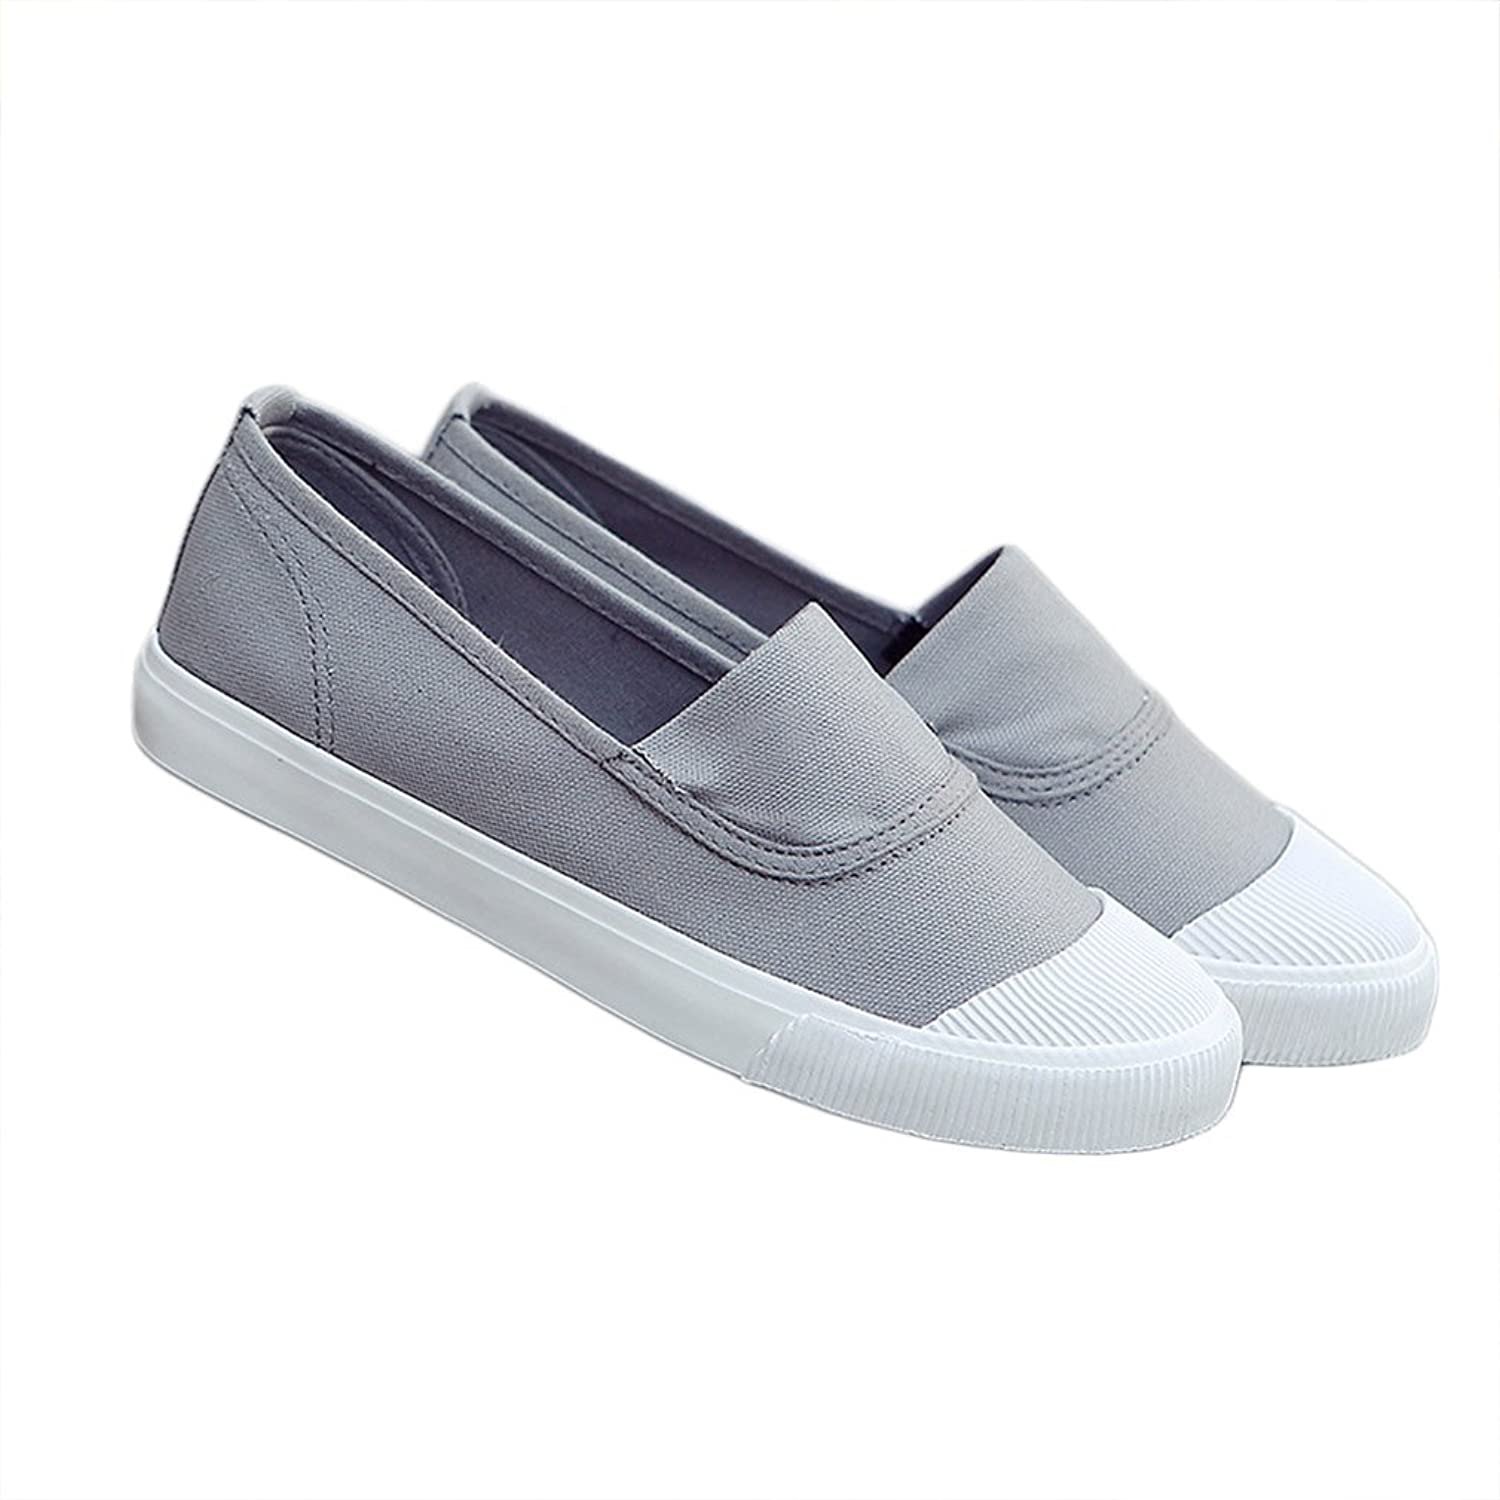 R&V Women's Classic Canvas Slip-On Shoes Walking Flats 4Colors